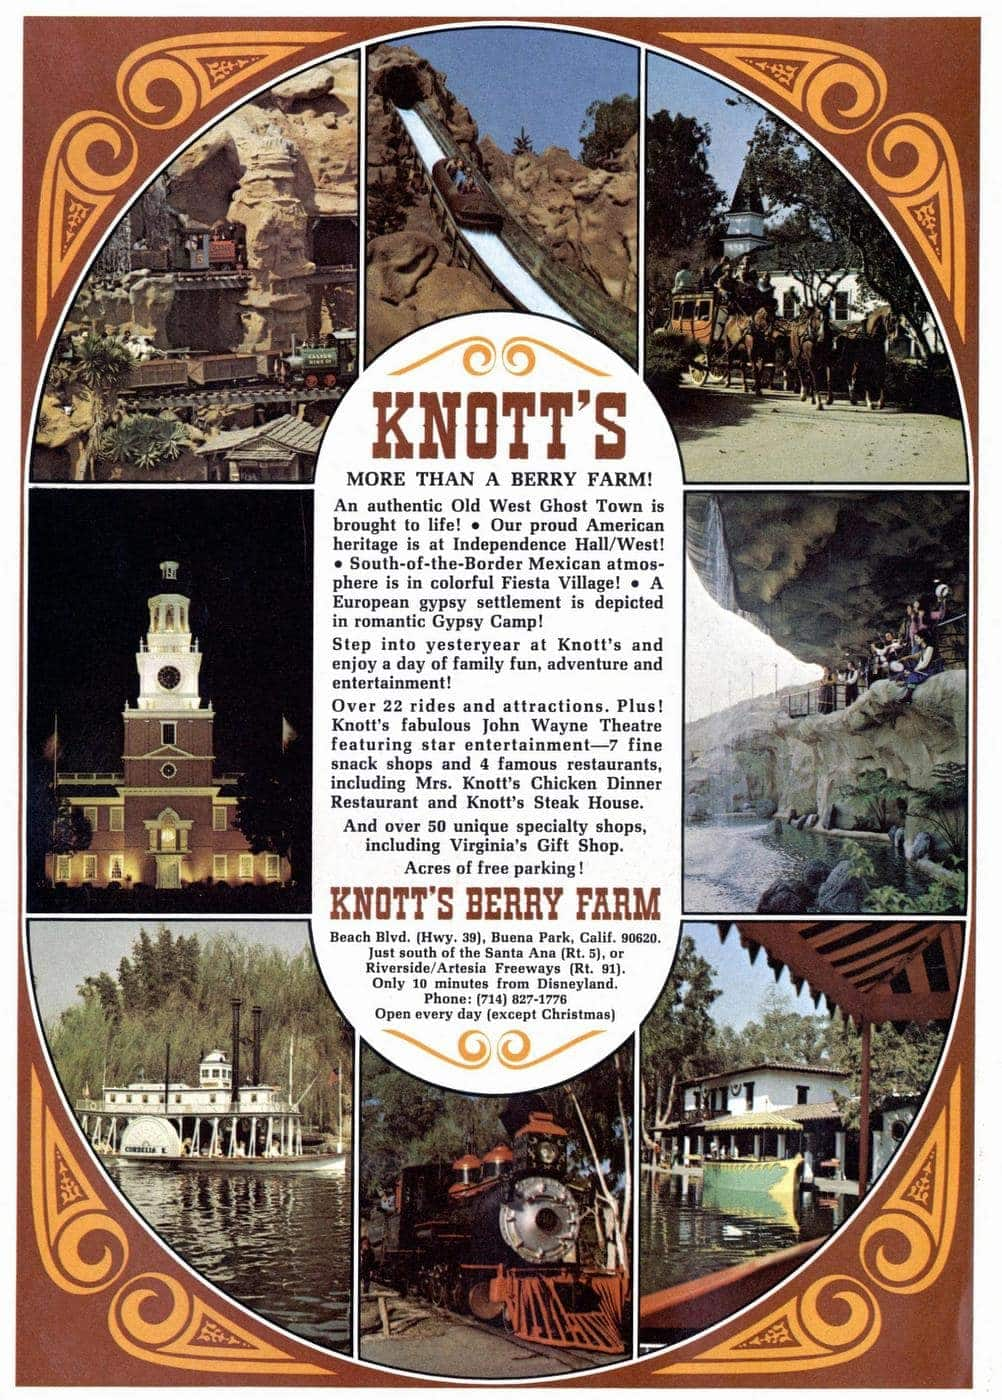 What Knott's Berry Farm looked like in 1973